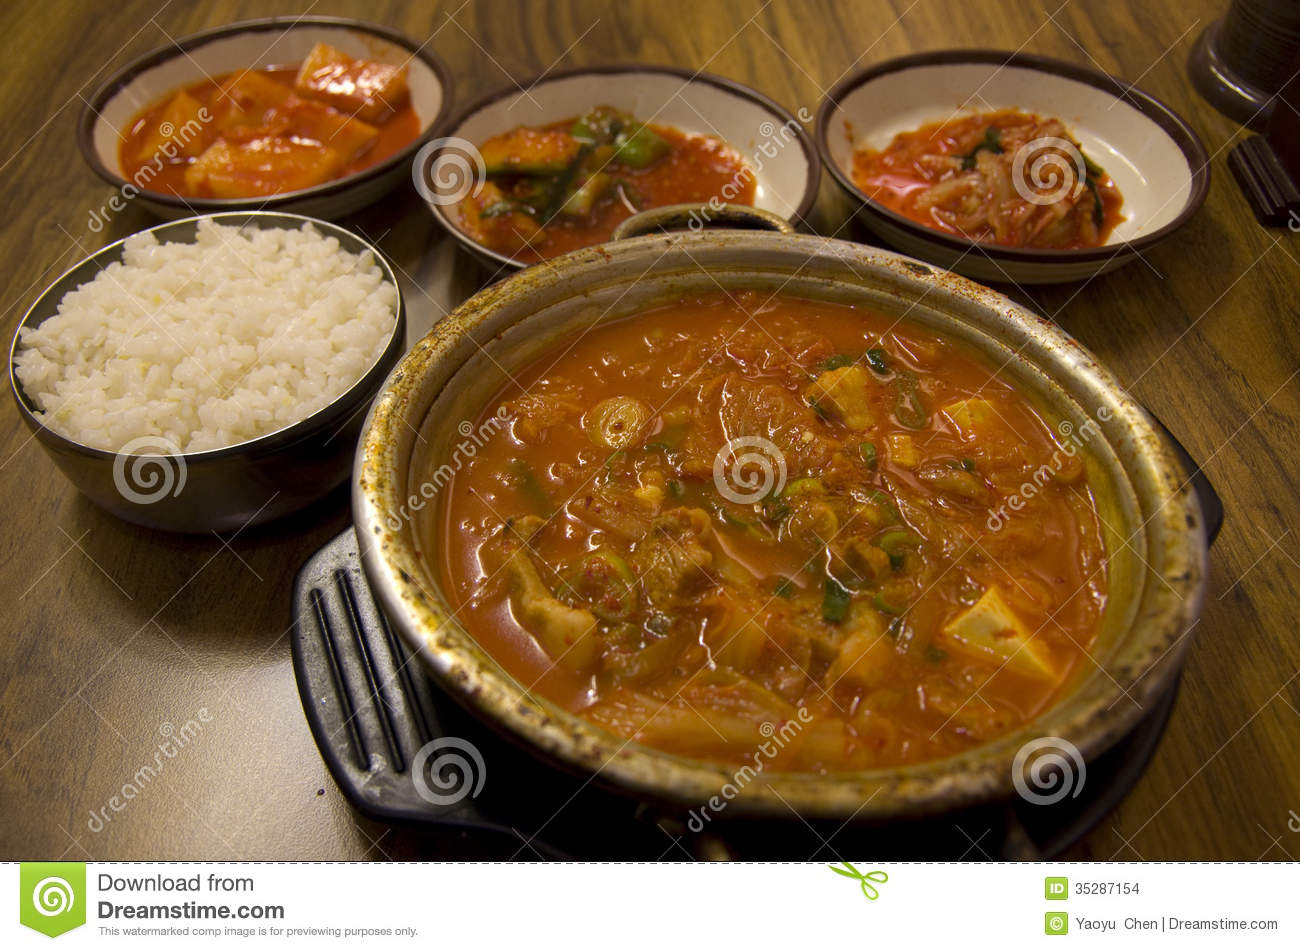 Korean Food Cuisine Kimchi Restaurant Stock Photo - Image of culture ...